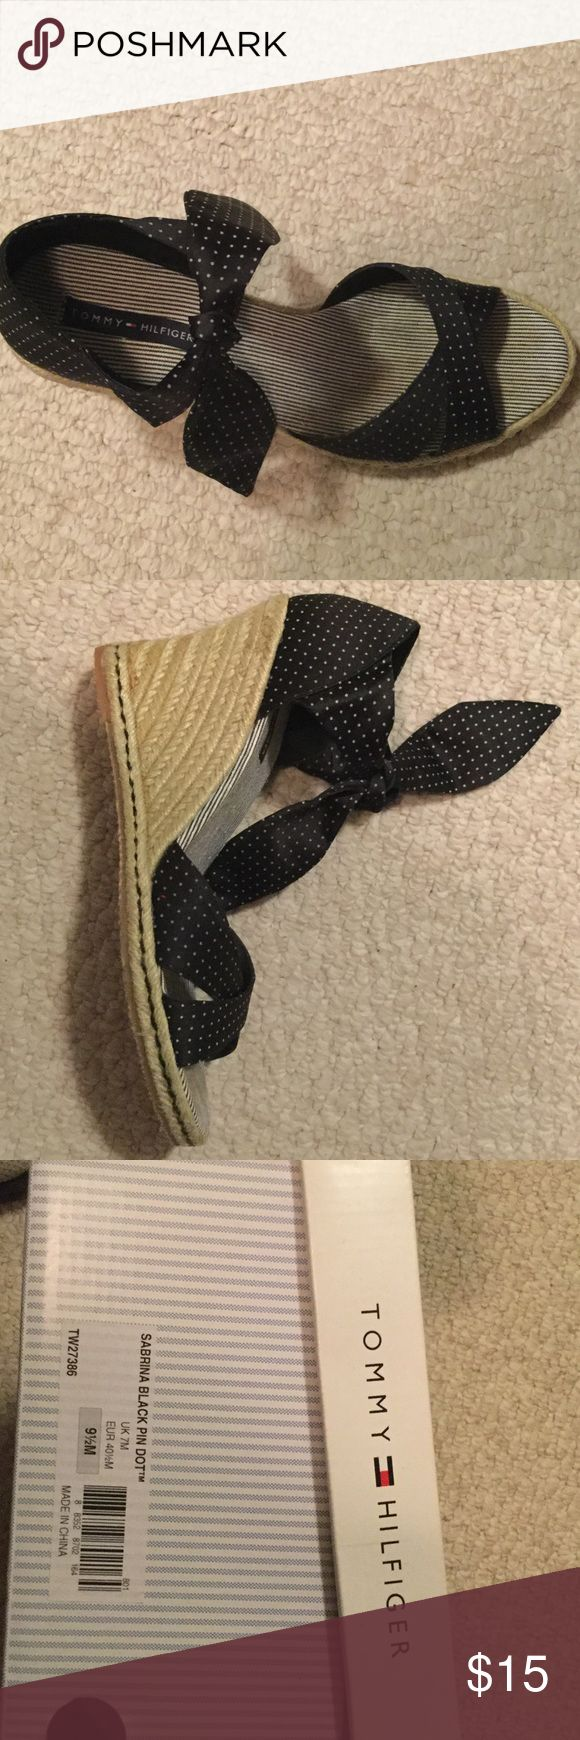 Black and white Espadrilles Black and white pin dot satin espadrilles ..worn 3x Tommy Hilfiger Shoes Espadrilles